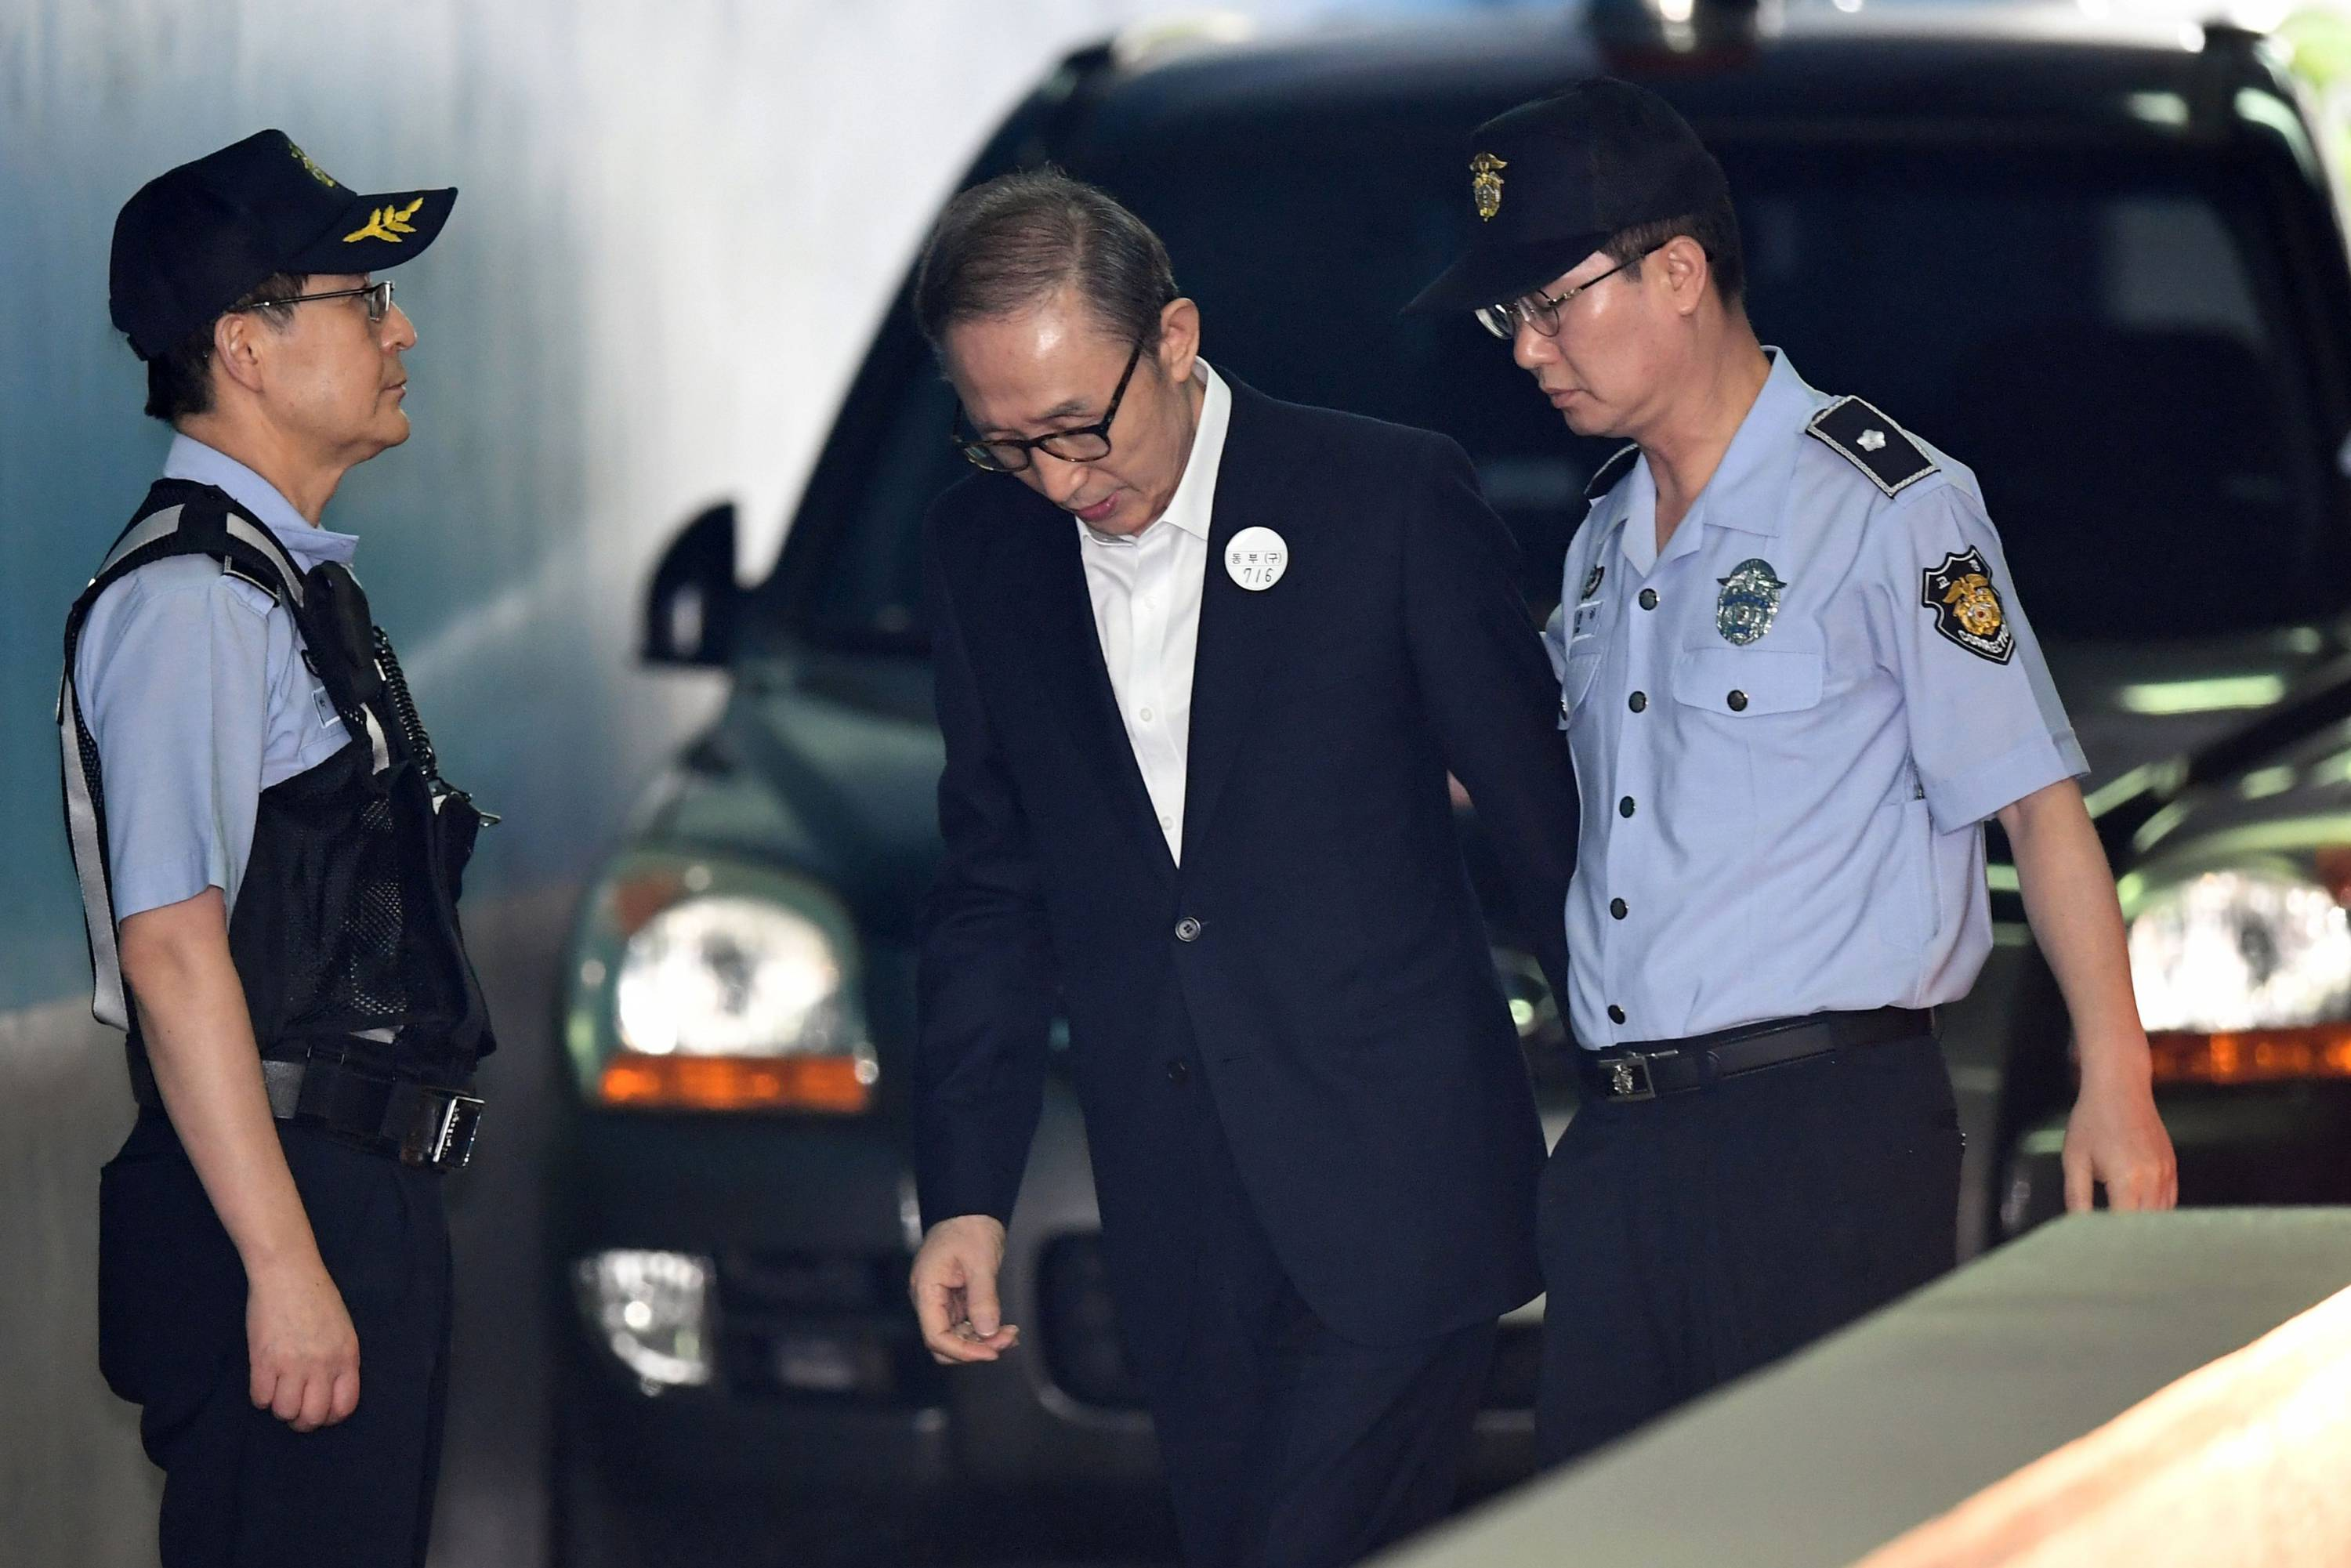 SKOREA-POLITICS-CORRUPTION-LEE